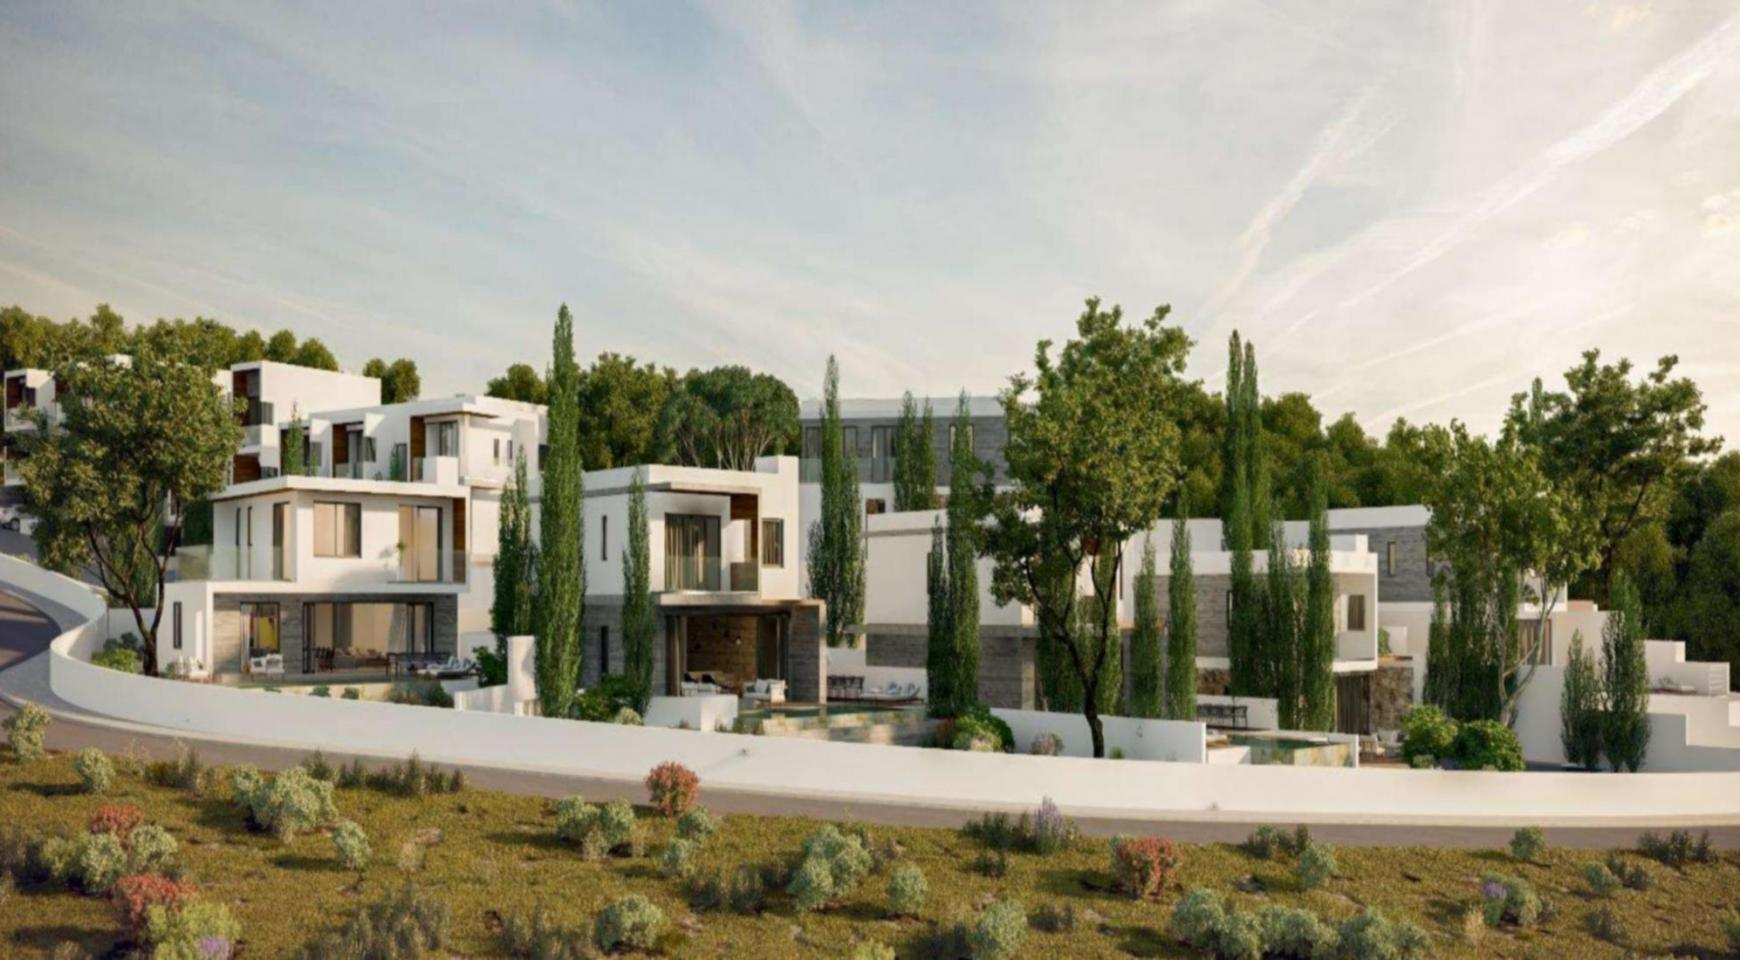 New Luxurious 2 Bedroom Townhouse in Agios Tychonas - 10